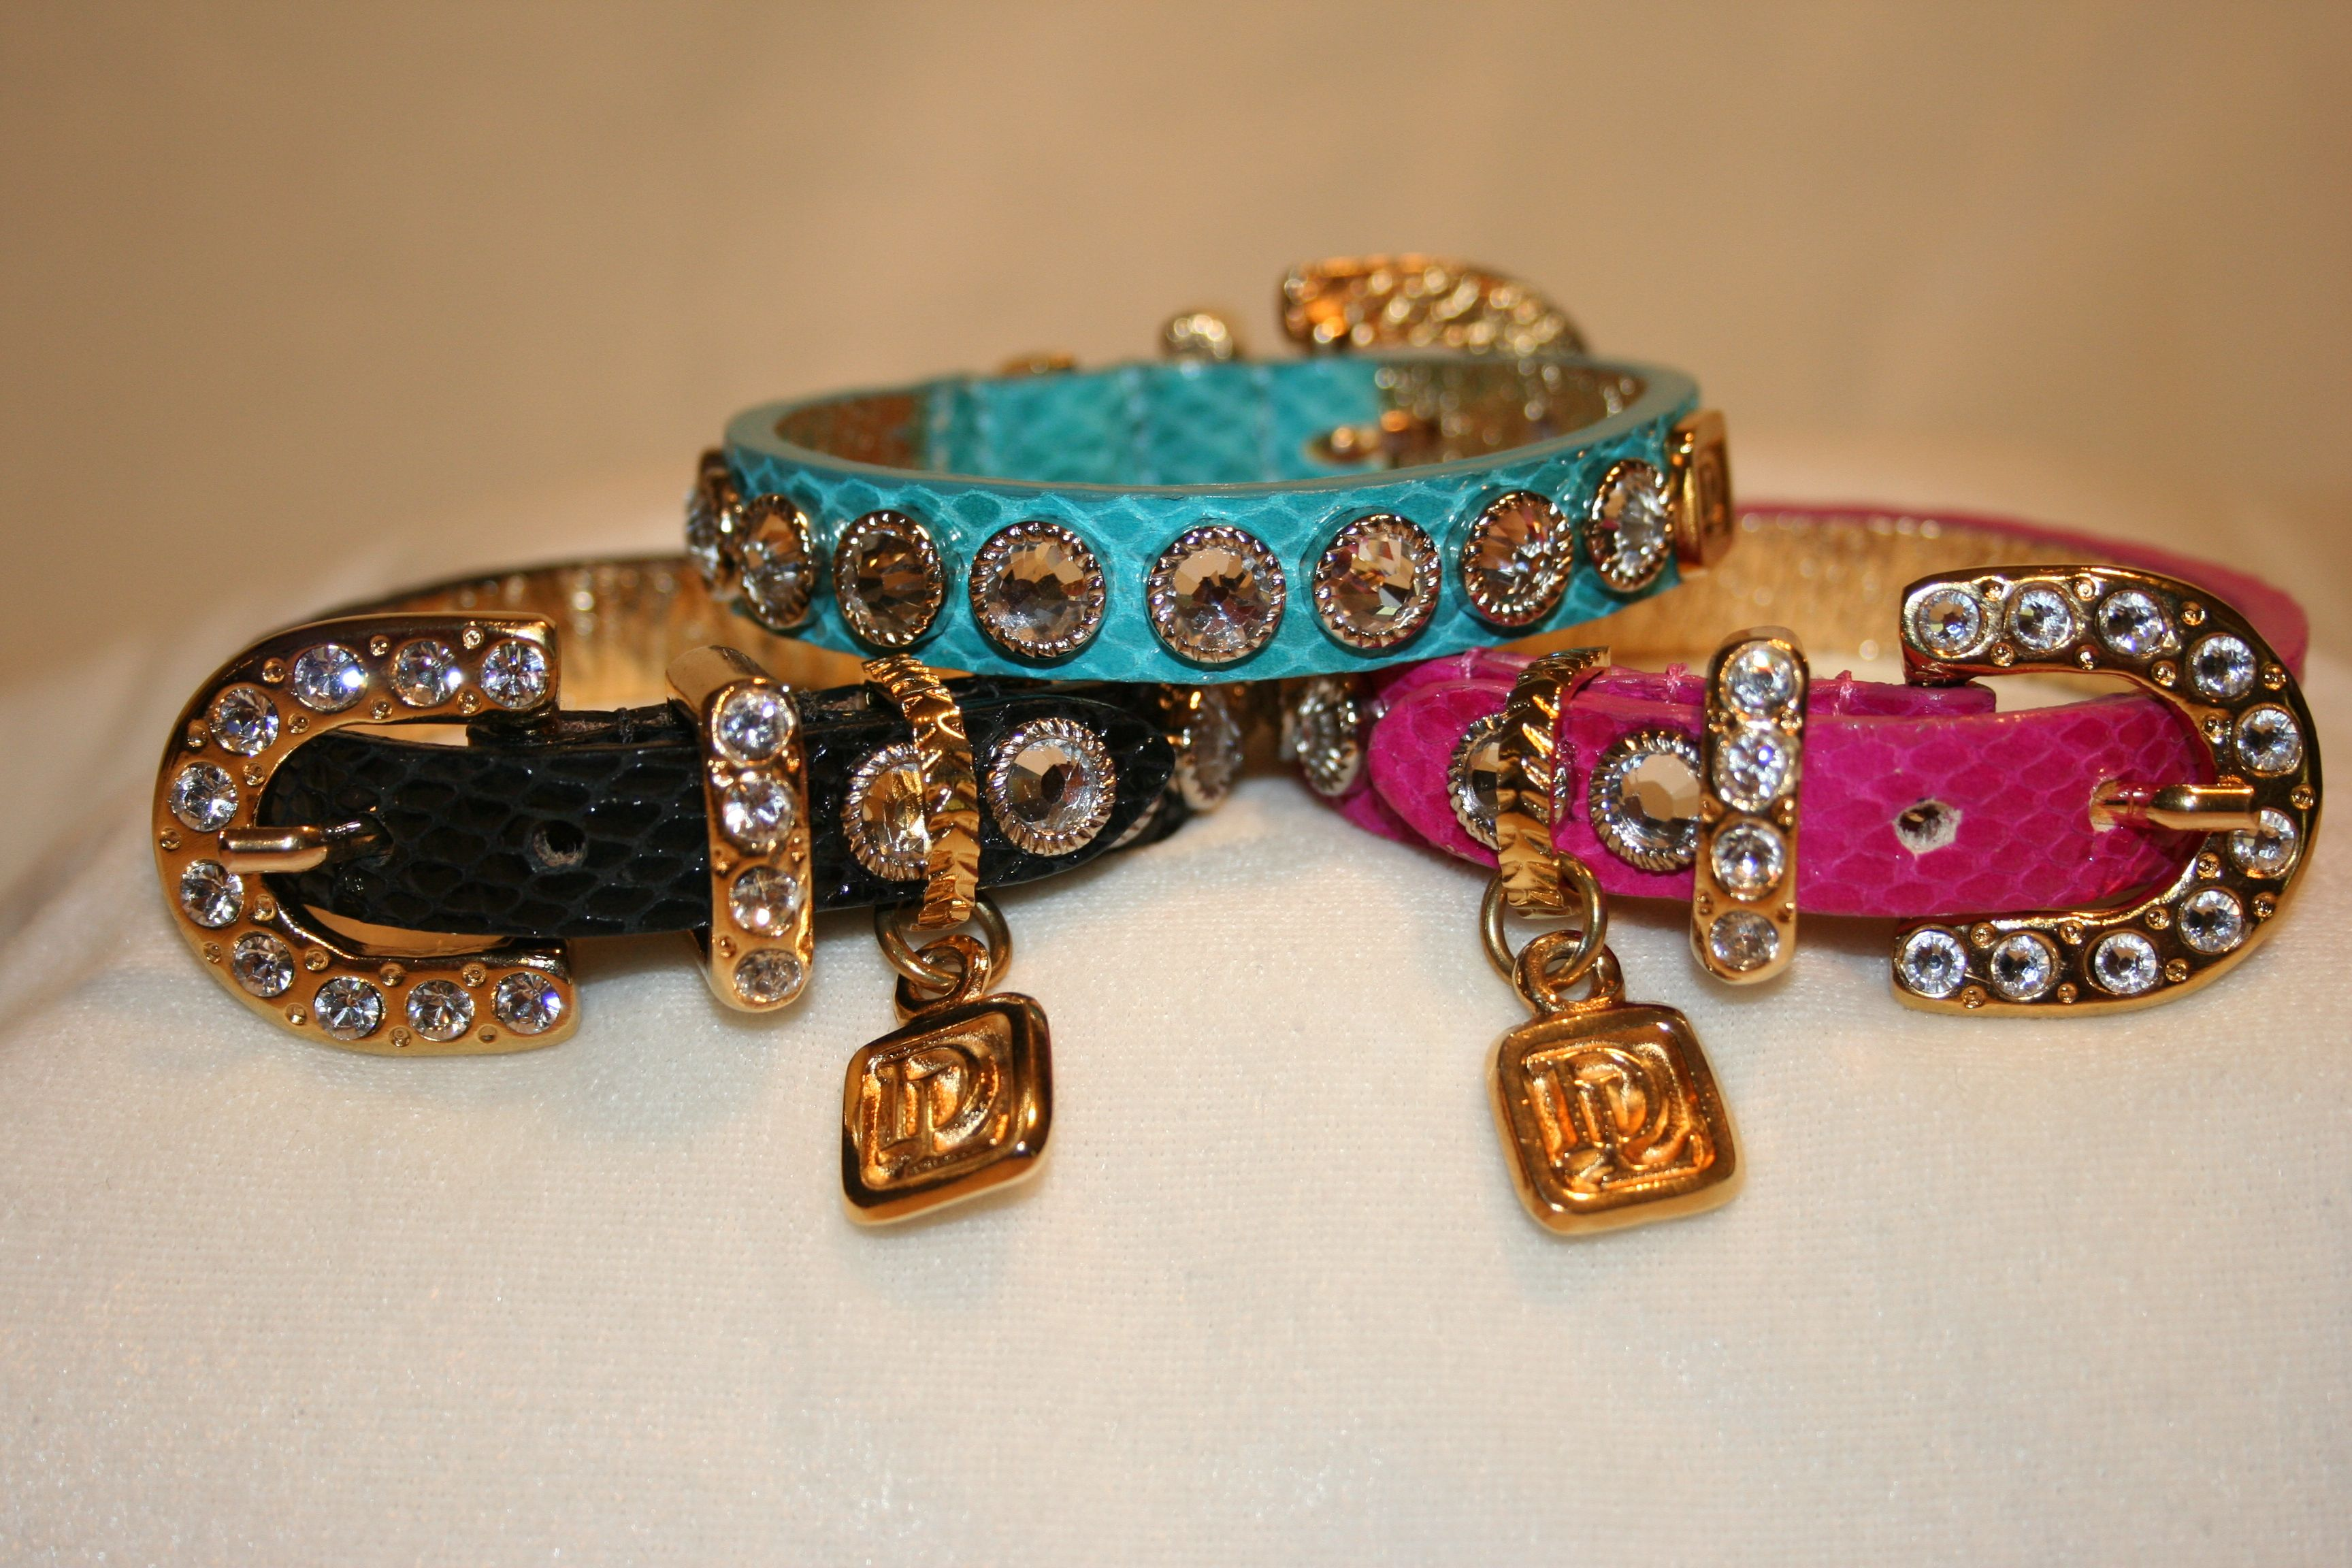 Fashion-Collars-for-Dogs-Dog-Collars-Luxury-Goods-Dog-Collar-Doggy-Luxe-Scott-Mikolich-Christan-Nguyen-2